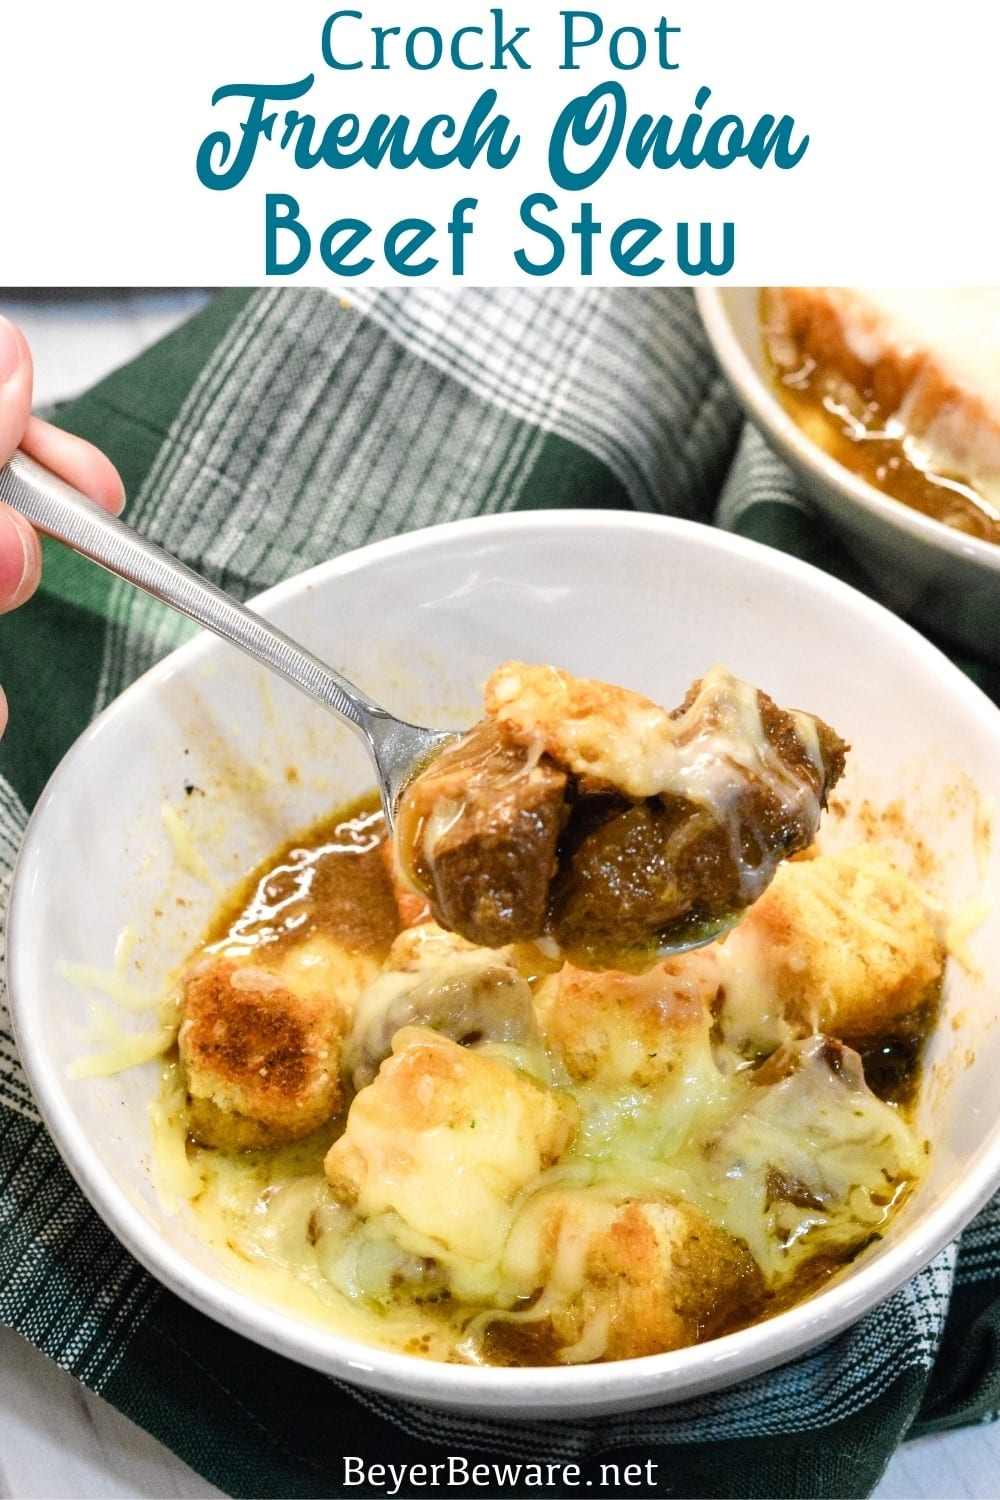 Crock Pot French Onion Beef Stew is a hearty French onion soup recipe that combines the rich flavors from the beef and caramelized onions for a buttery soup topped off with crusty bread or croutons and cheese.